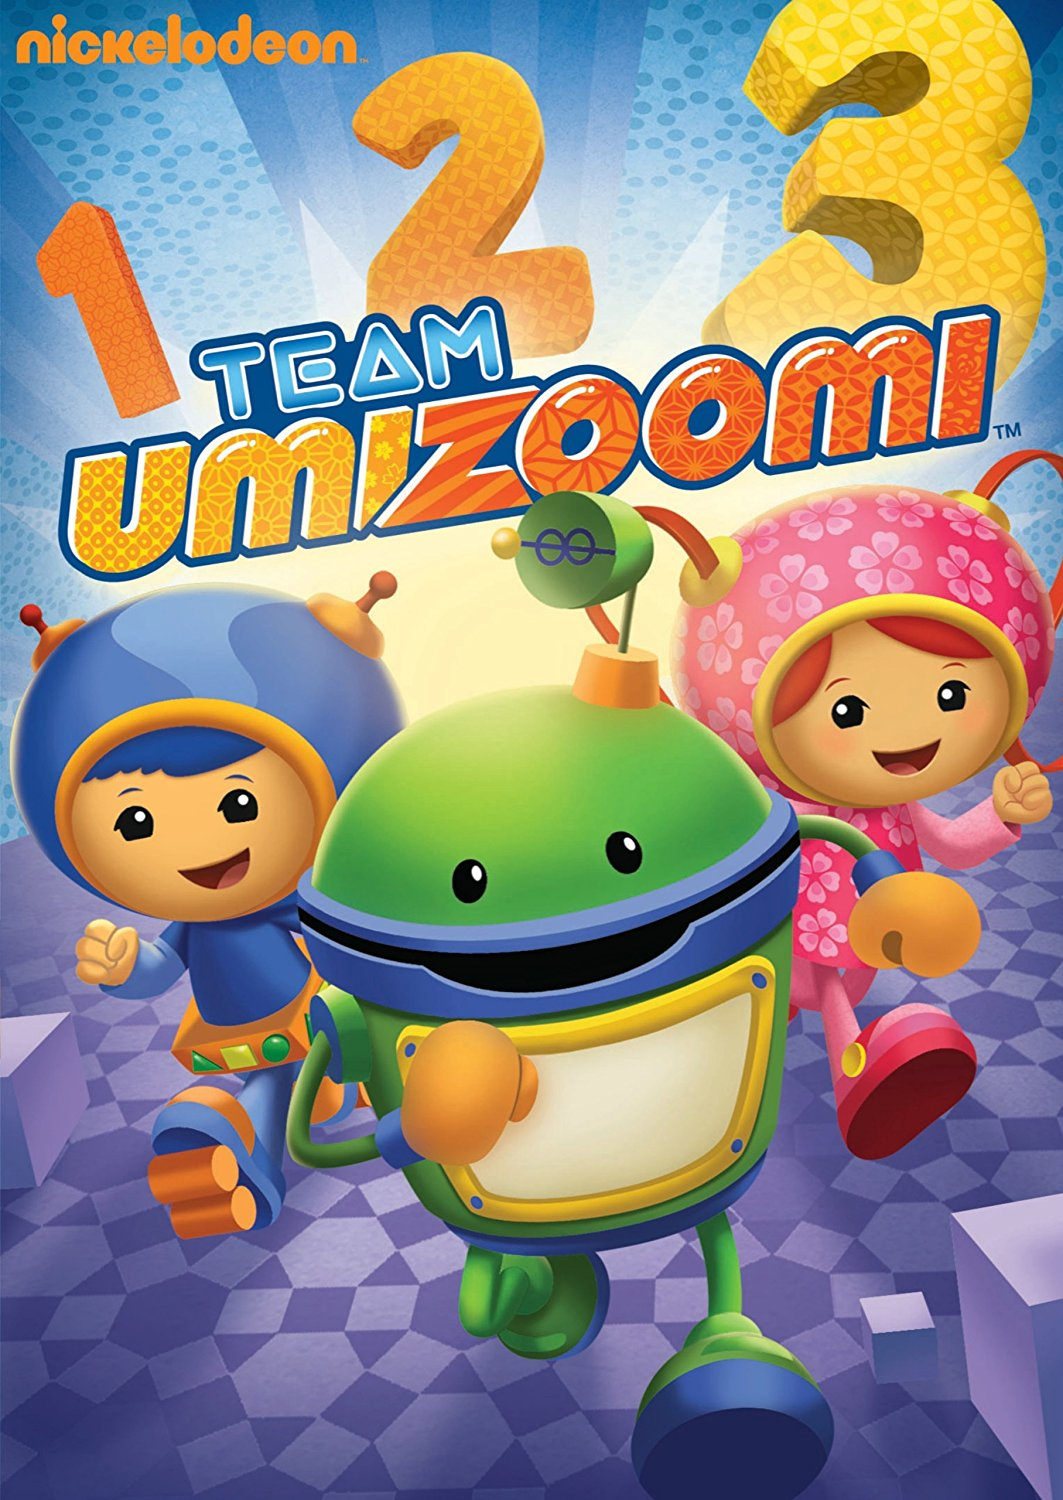 Team Umizoomi videography